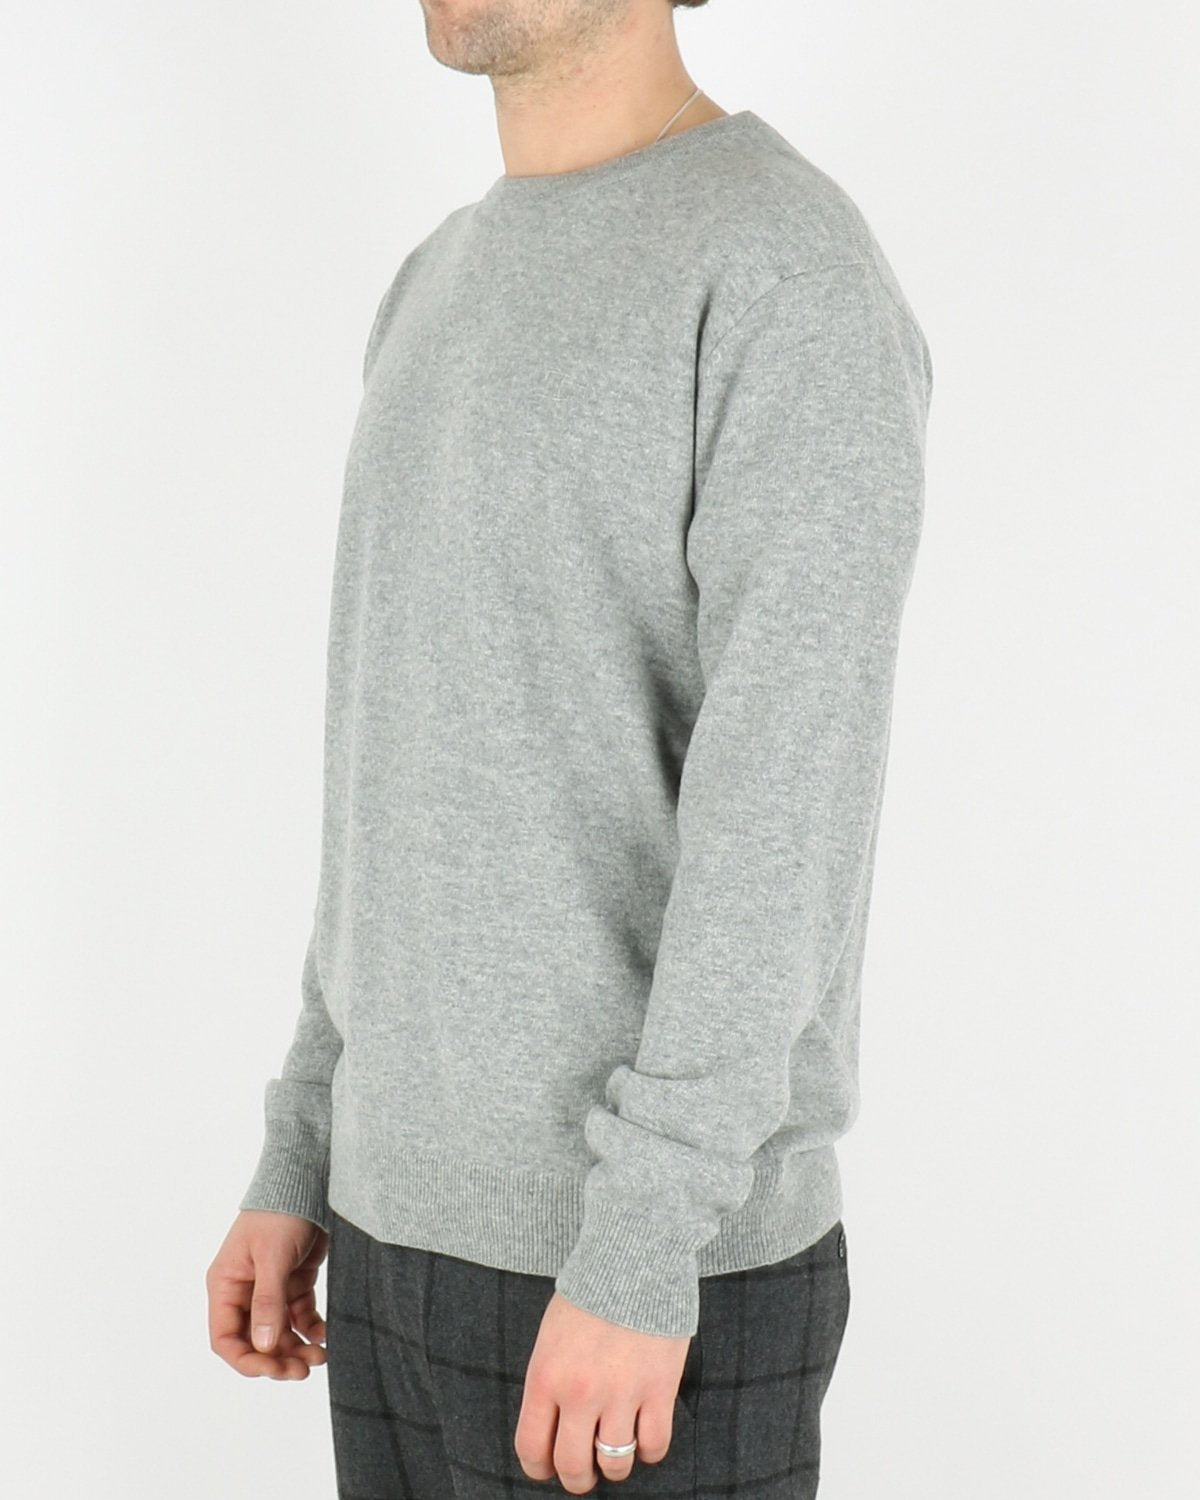 les deux_cashmerino knitwear_light grey melange_2_3